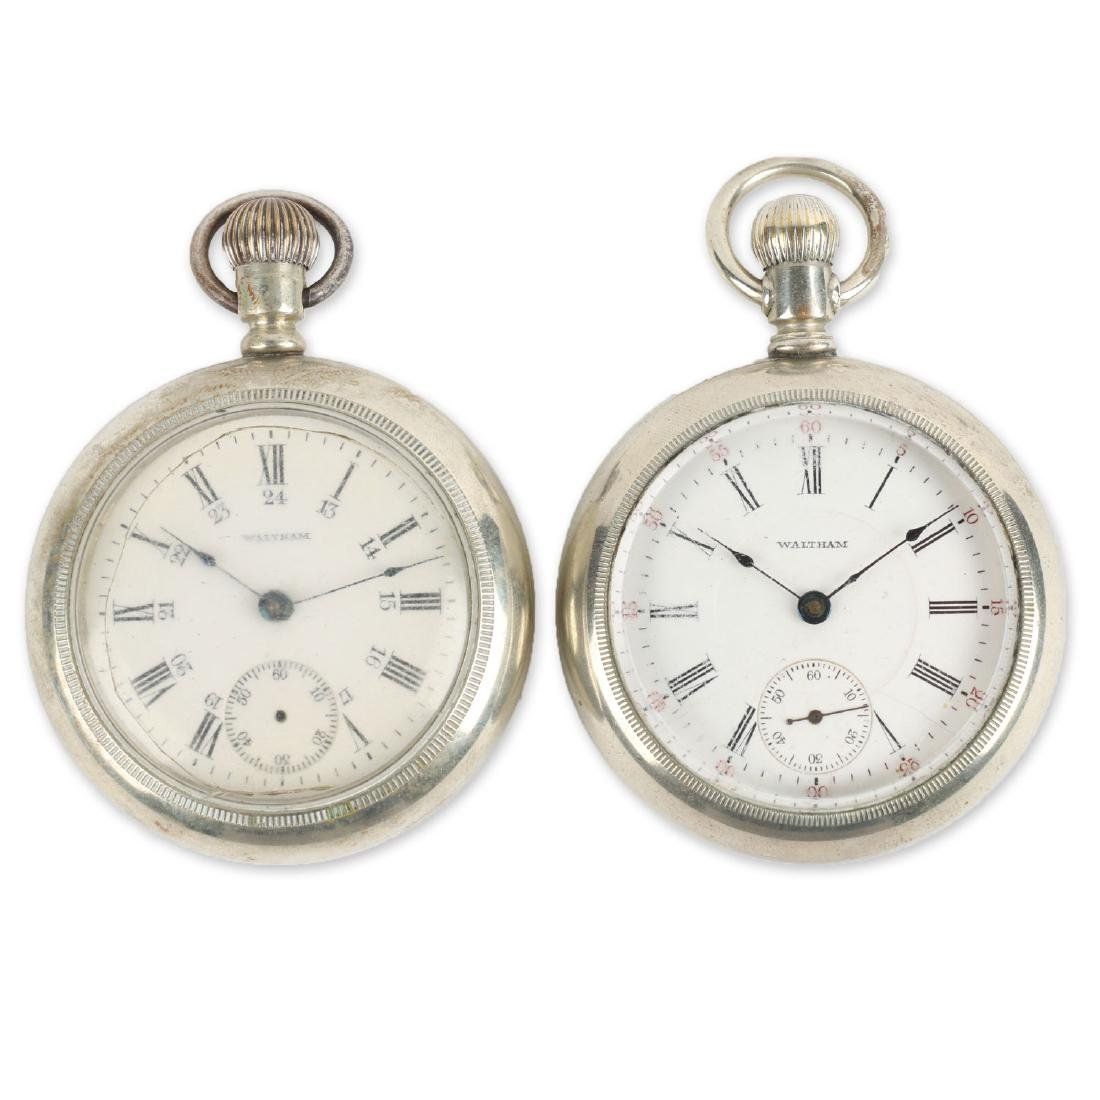 Two (2) 18S 1883 Model Waltham Pocket Watches